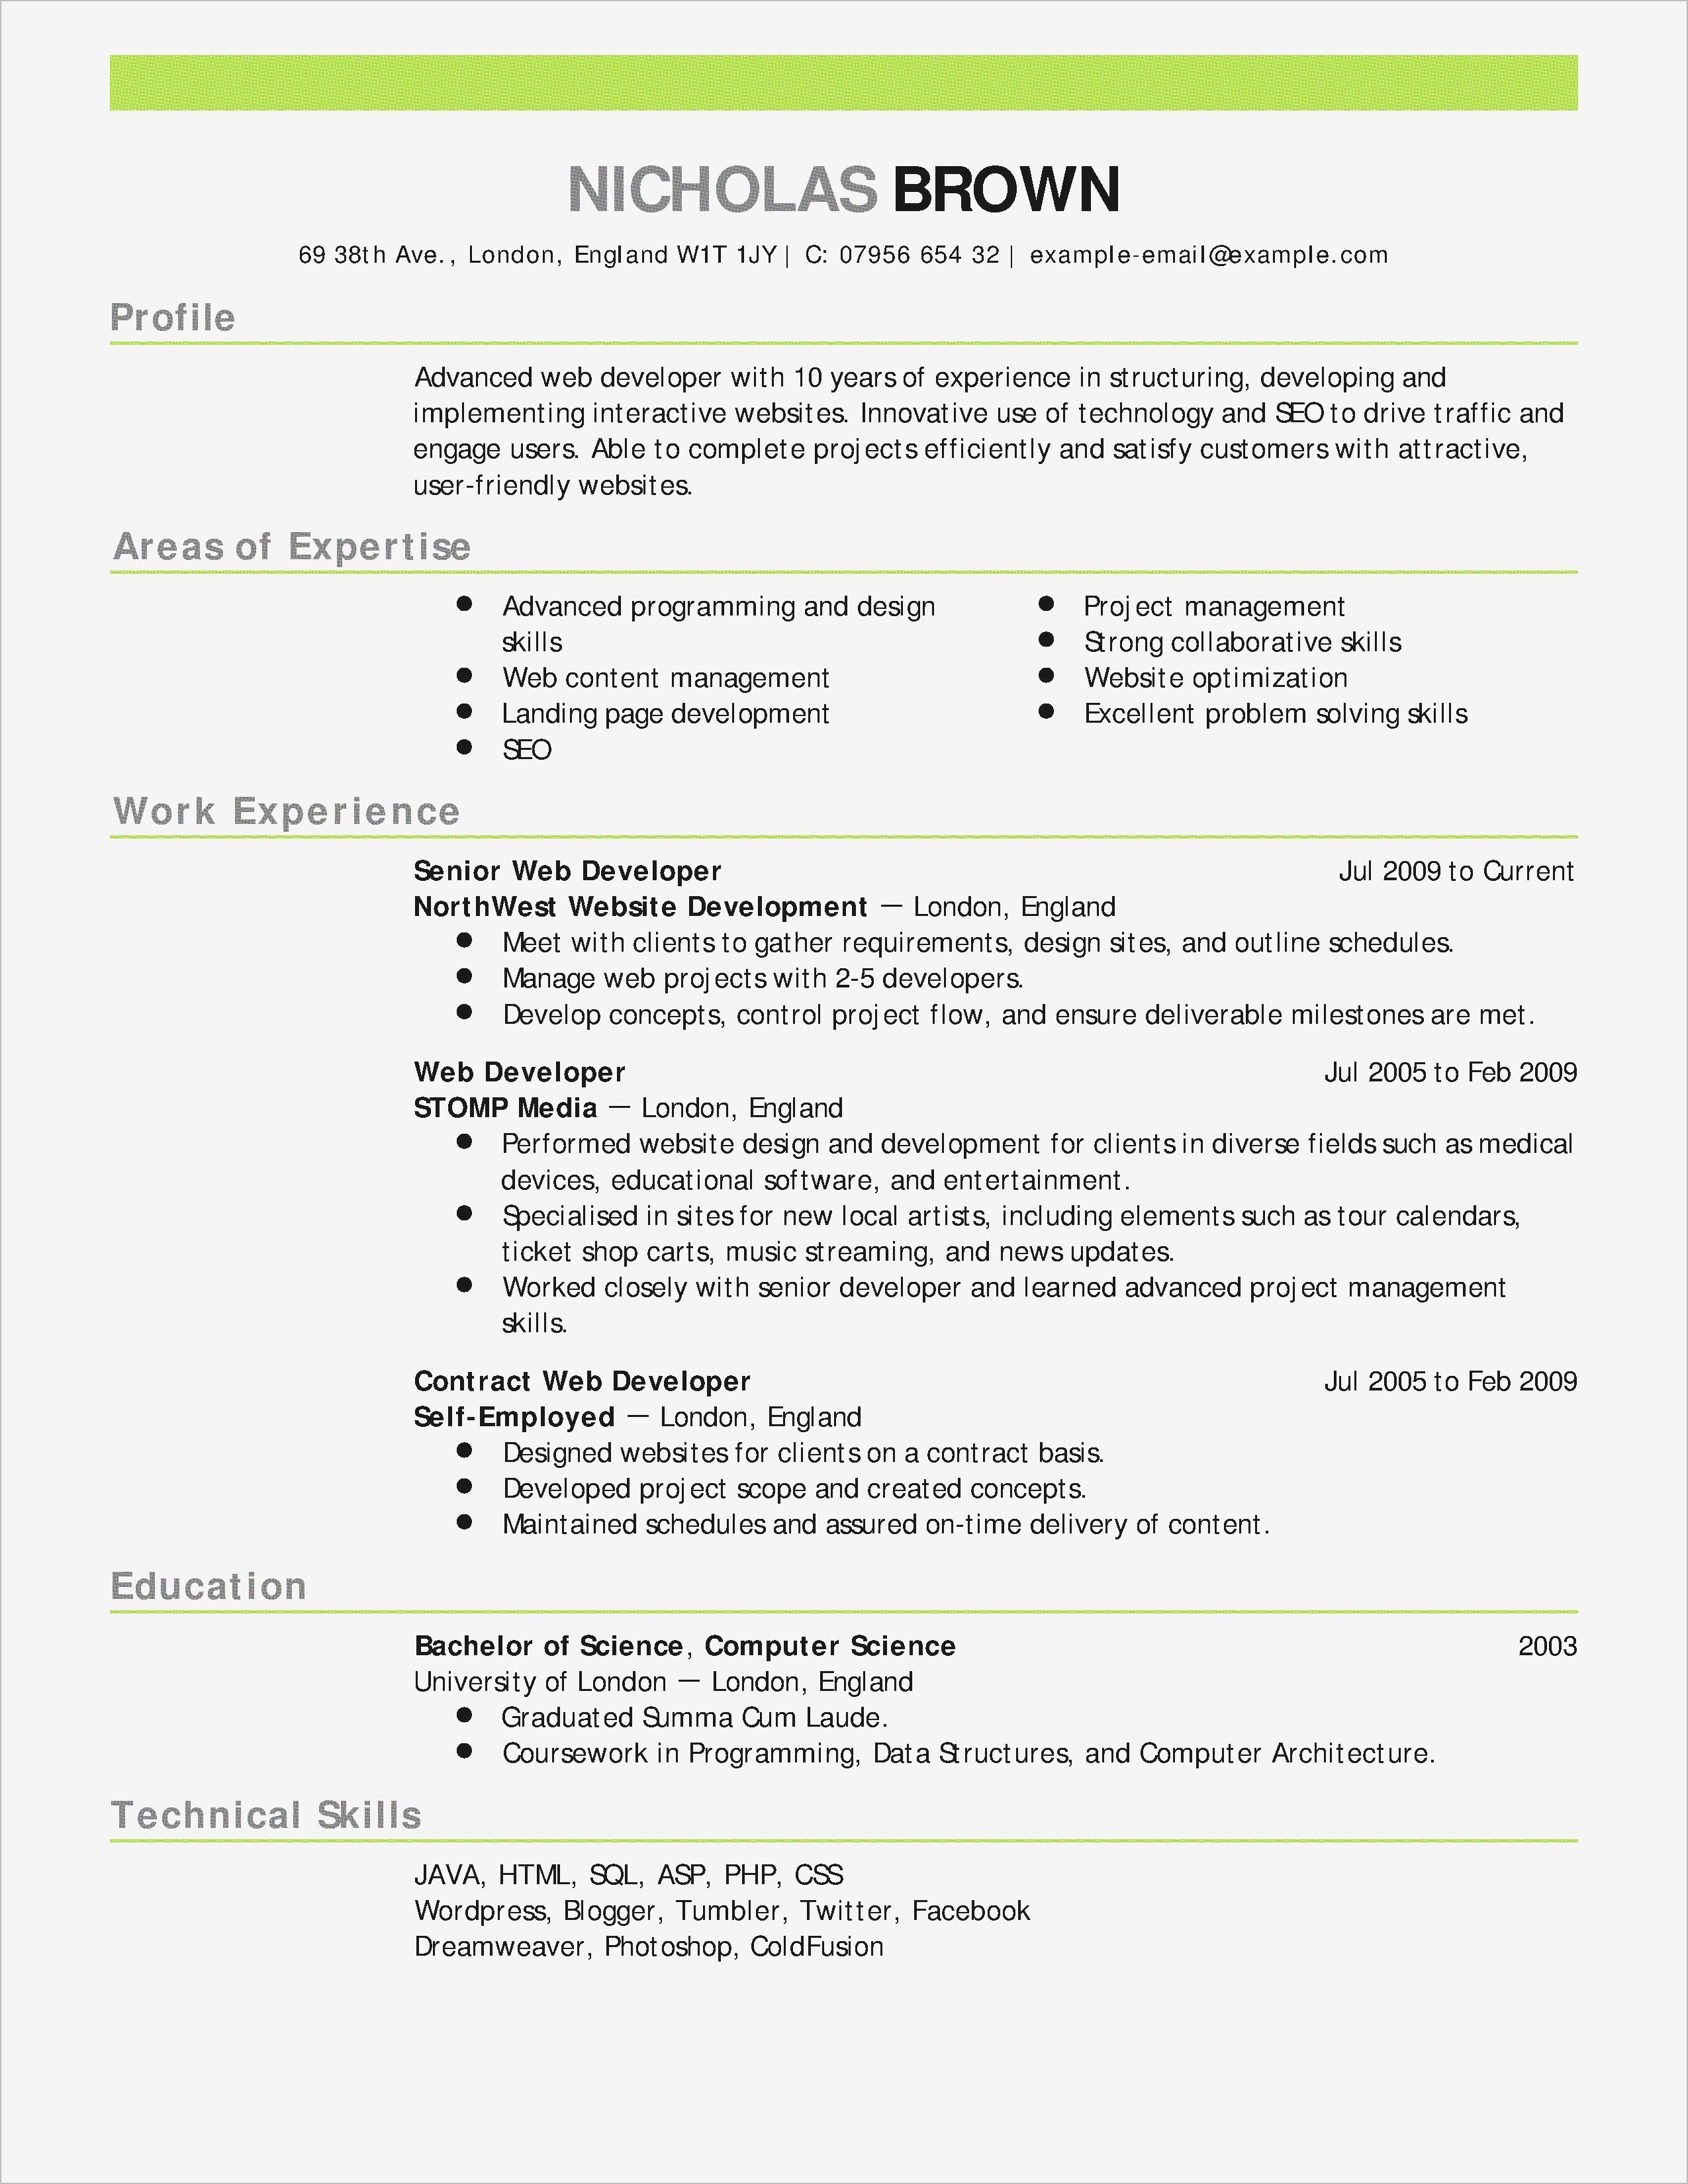 blogger resume template example-Elegant Free Resume Template for Word 17-j